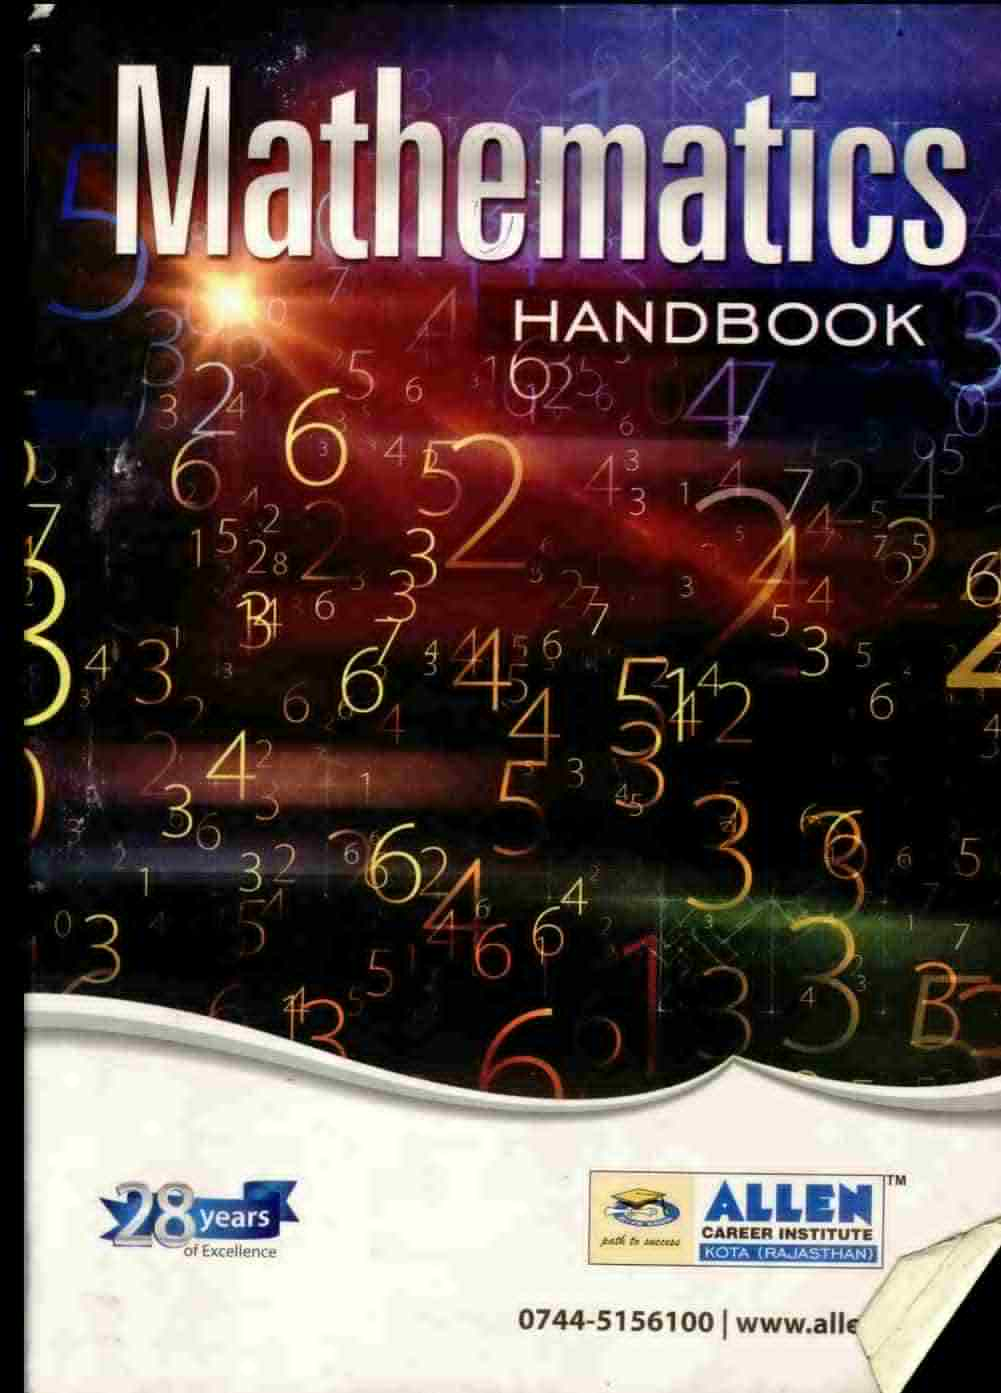 Allen Mathematics Handbook PDF Free Download | IIT | My Guide PDF